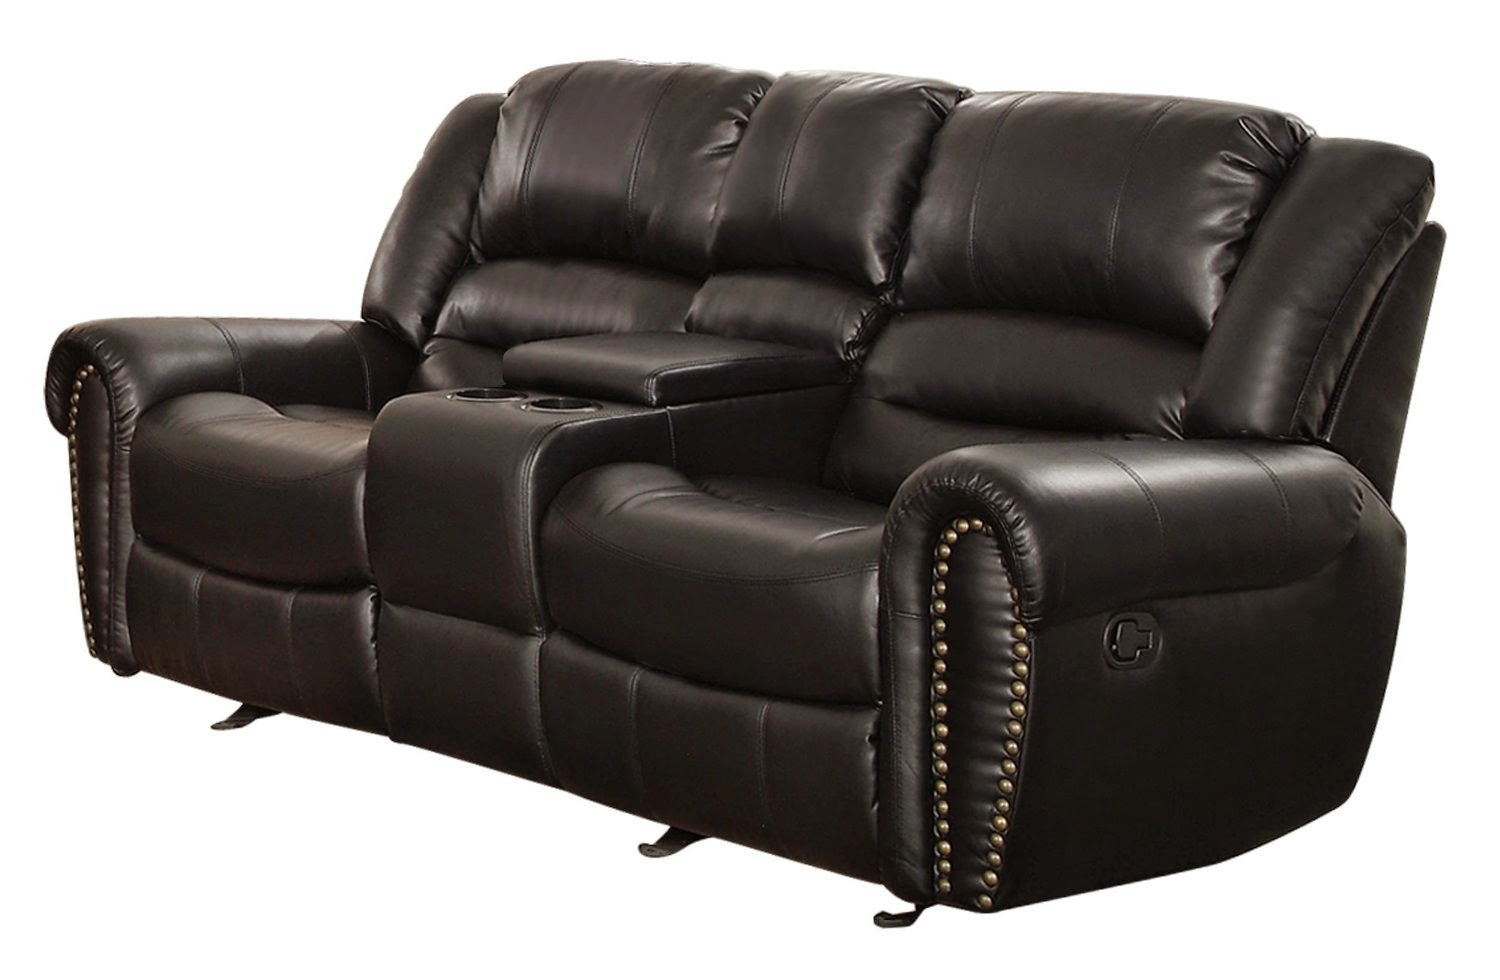 Reclining sofa loveseat and chair sets march 2015 Leather sofa and loveseat recliner